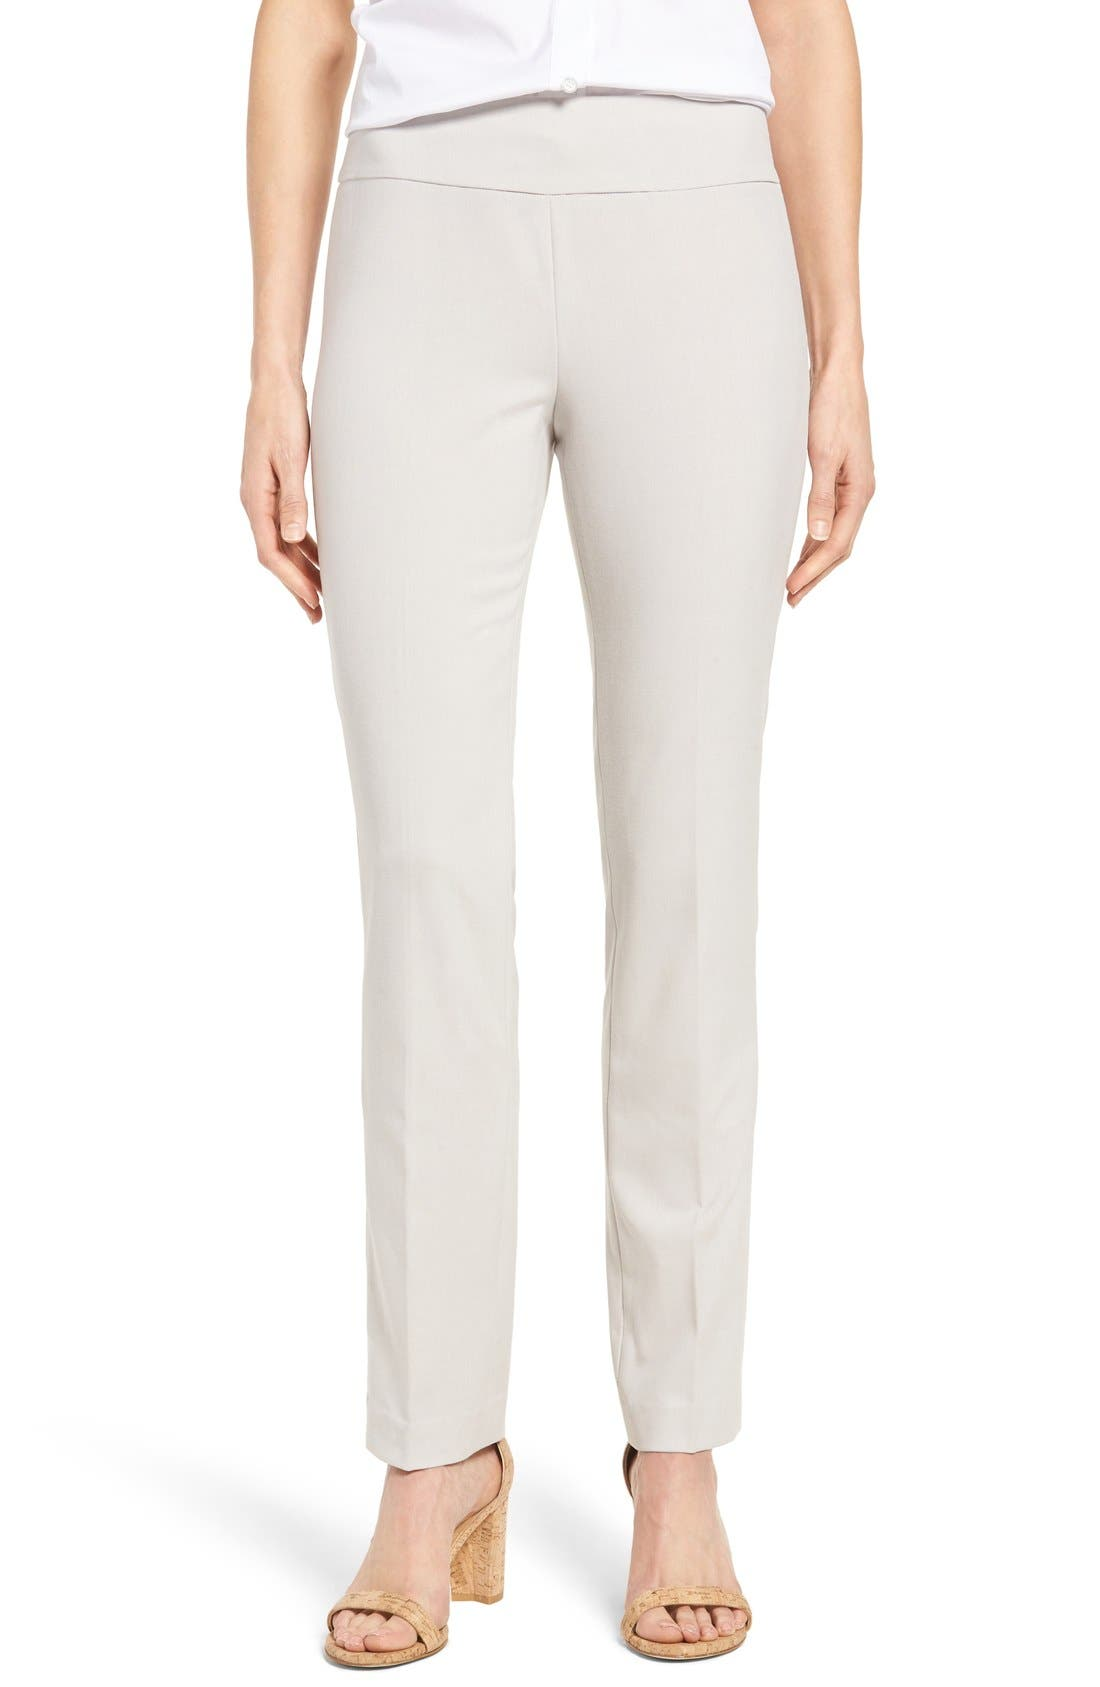 Main Image - NIC+ZOE Stretch Knit Slim Leg Pants